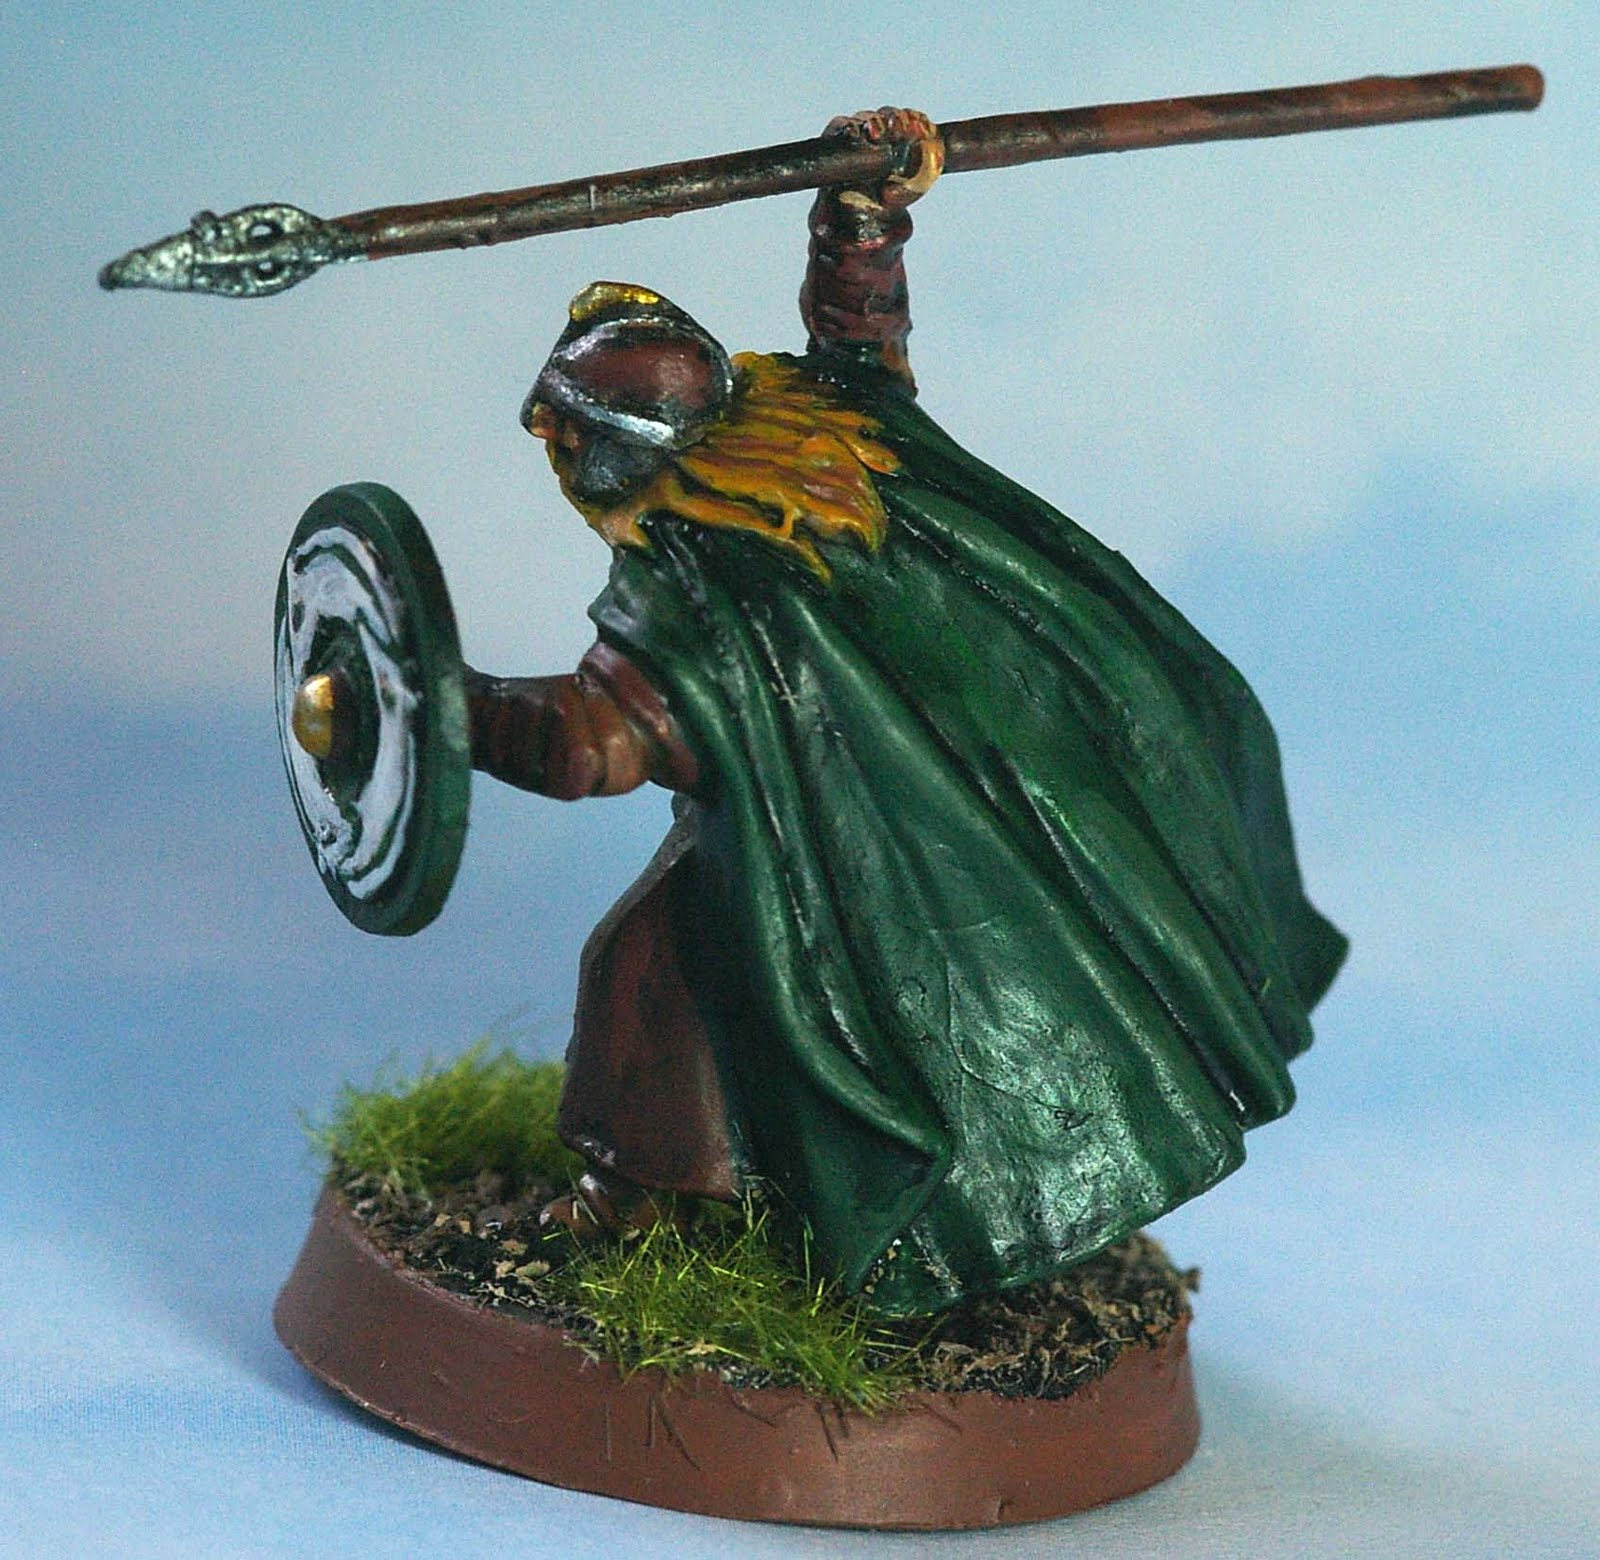 Painted figures older citadel and gw miniatures warrior for Rohan design